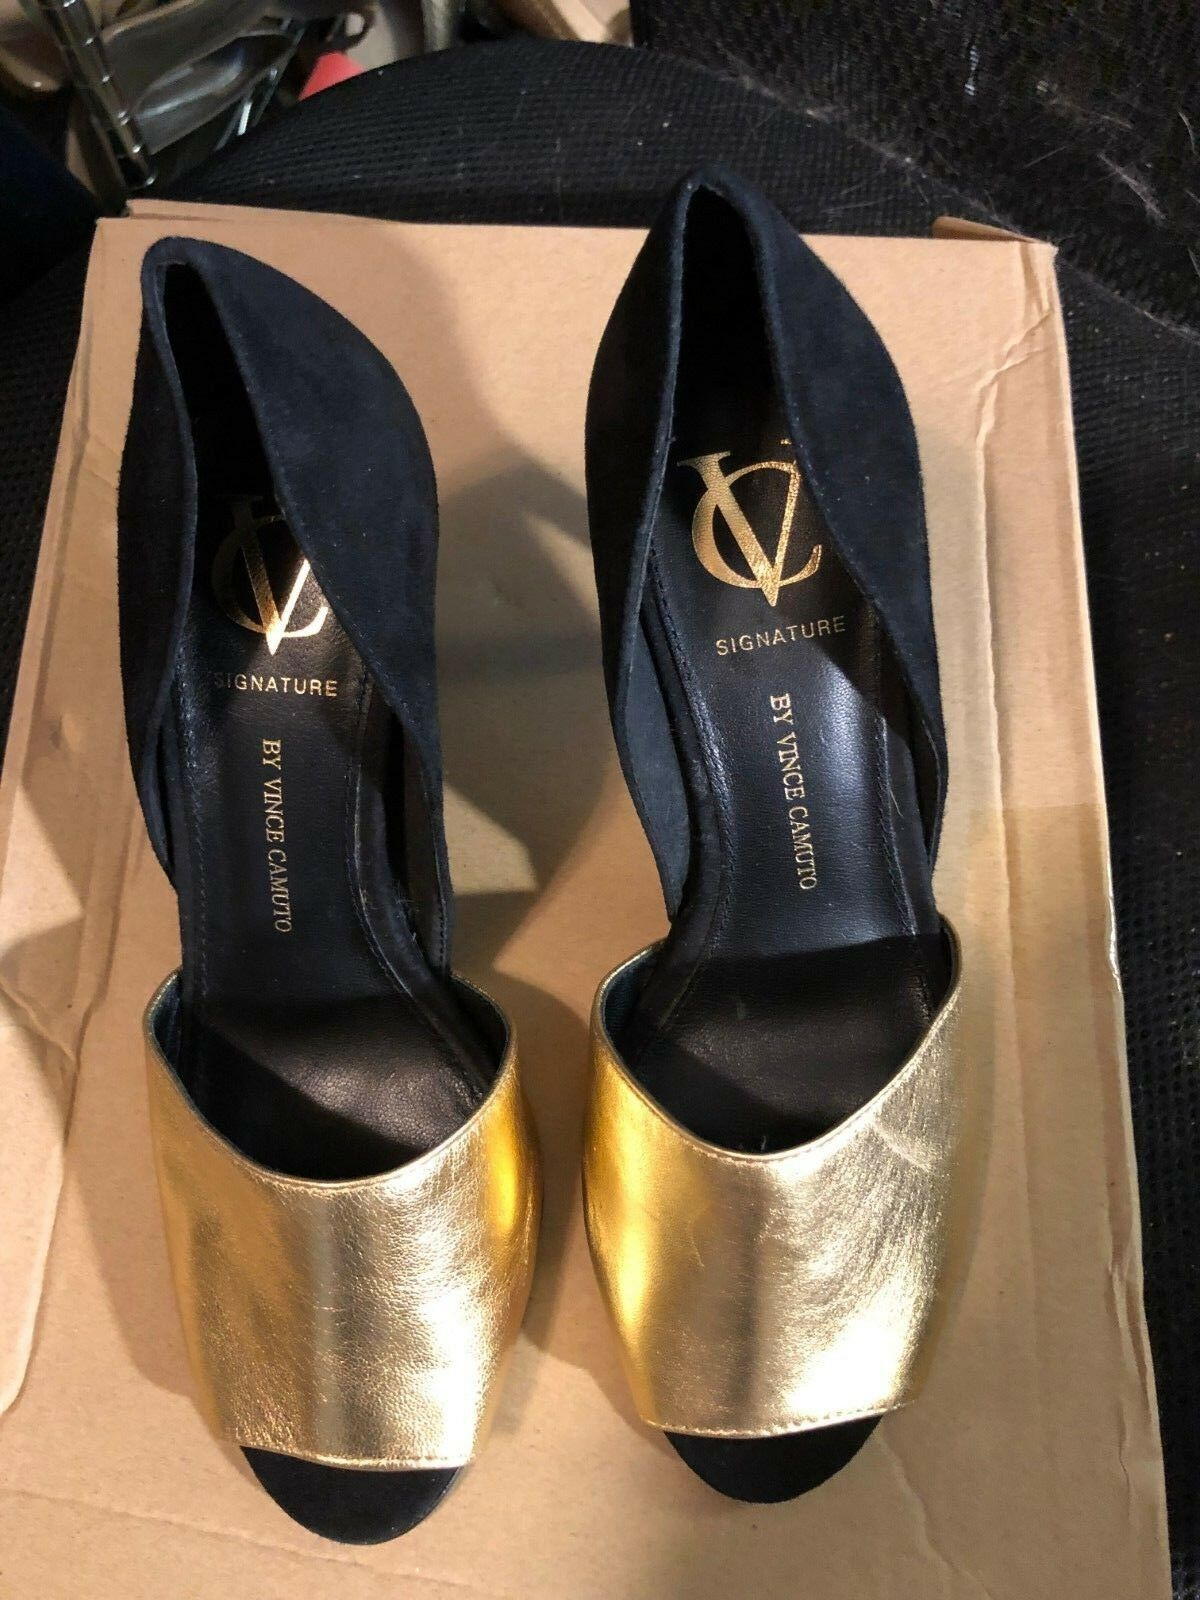 shoes, VINCE CAMUTO, Black suede gold leather open fronts, 3  heels, SZ  7M